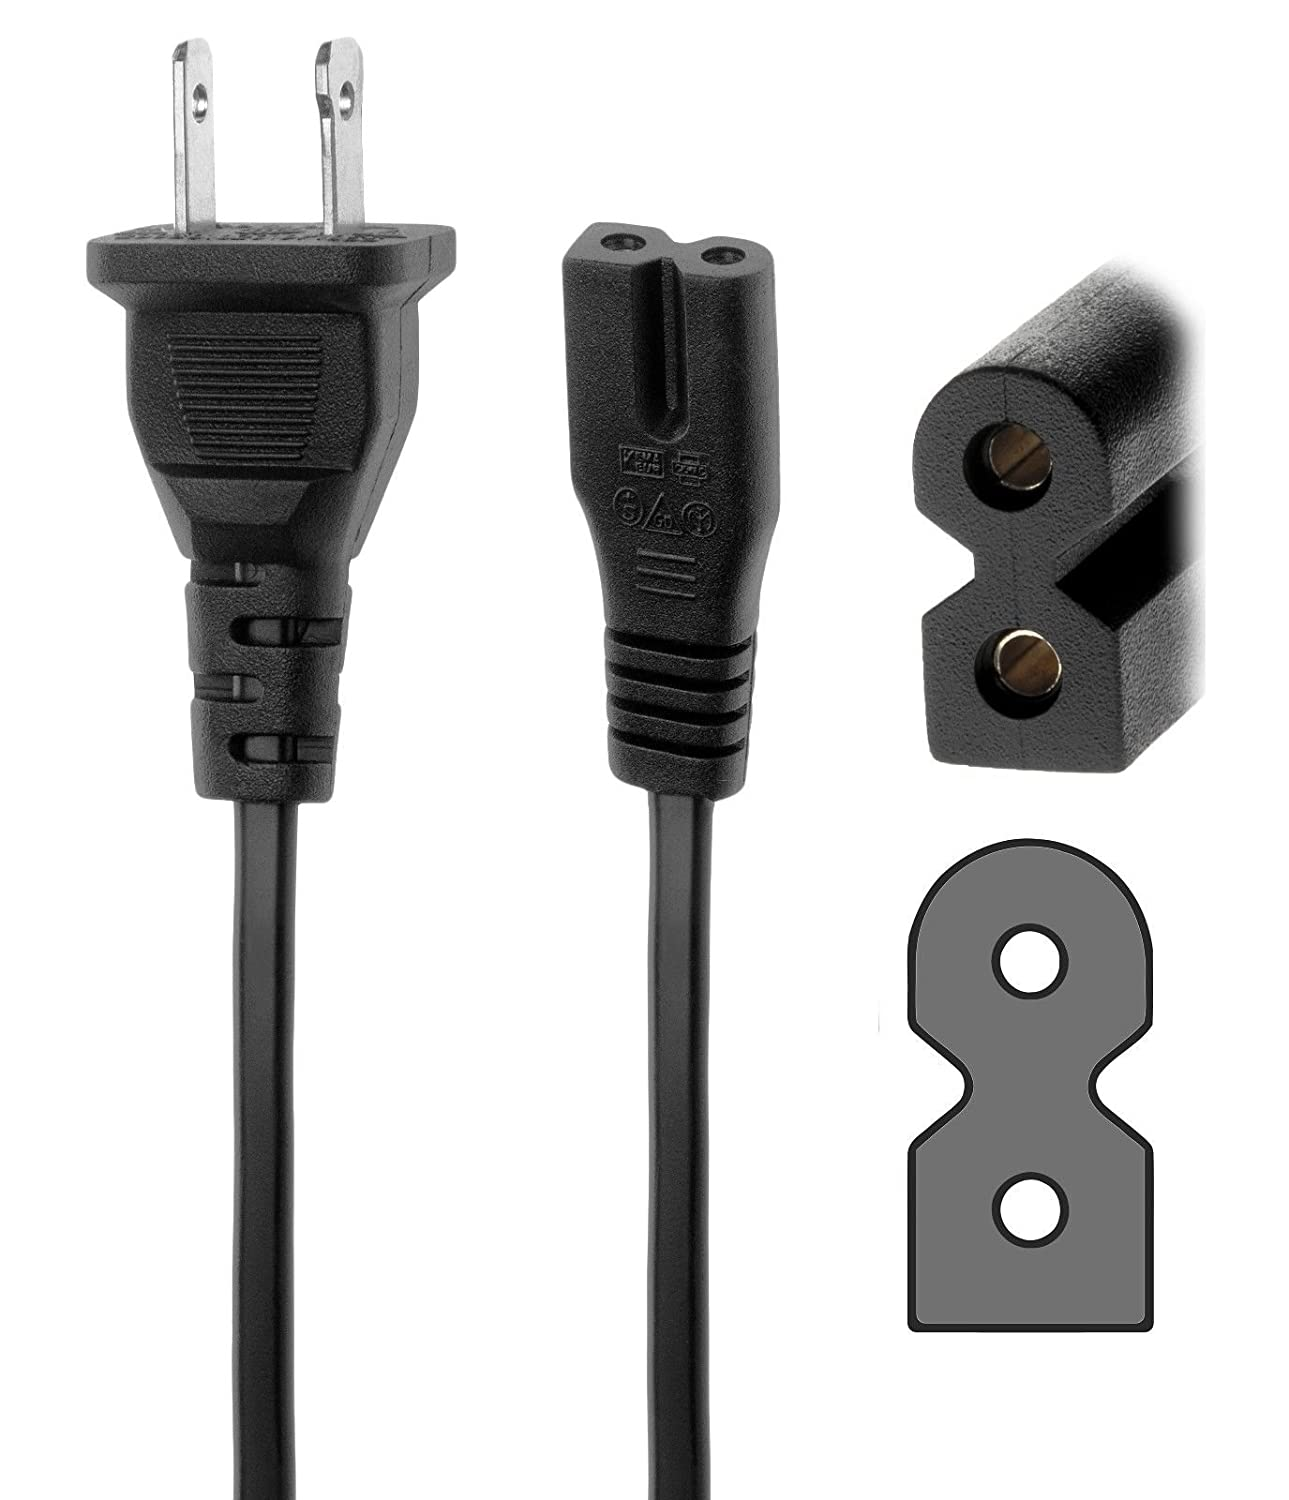 Amazon.com: TacPower Power Cord Cable For Philips Speaker System ...